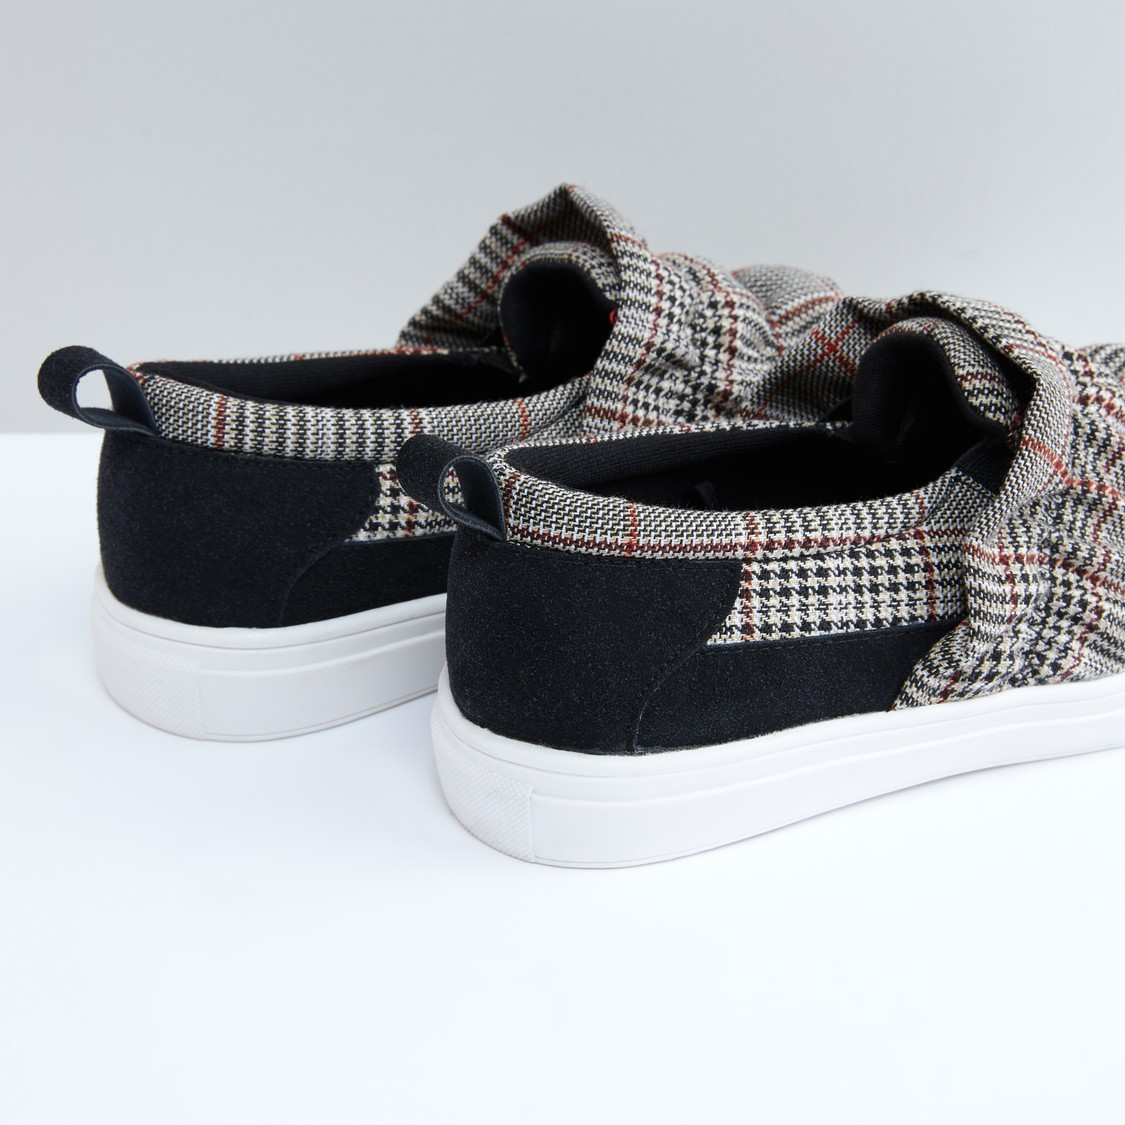 Chequered Slip-On Shoes with Ruffle Detail